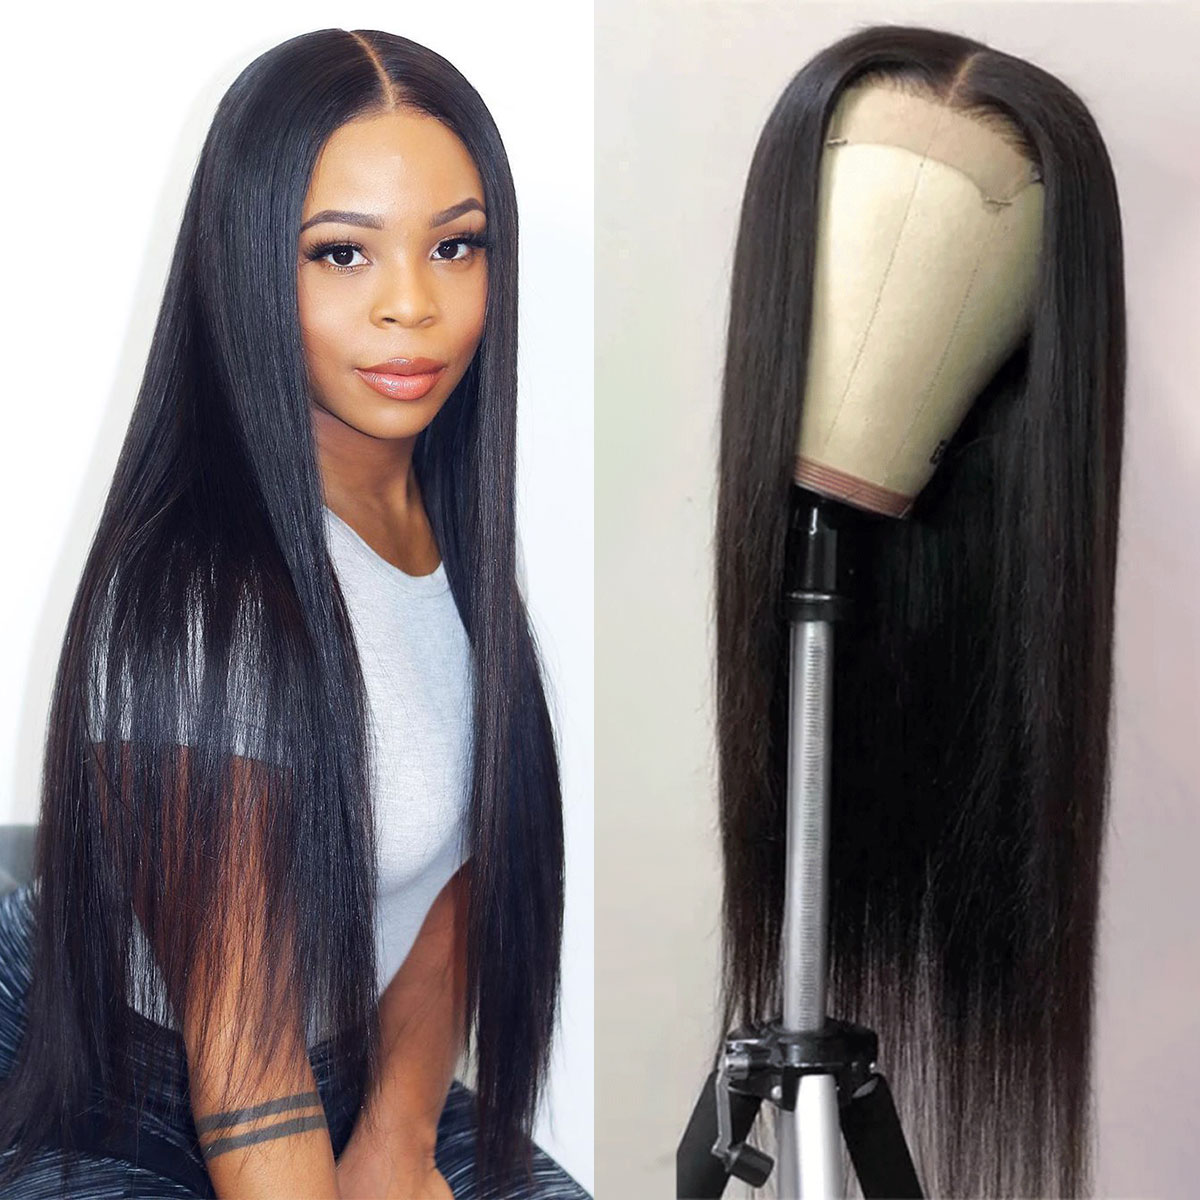 celie straight hair 6x6 Lace Closure Wig